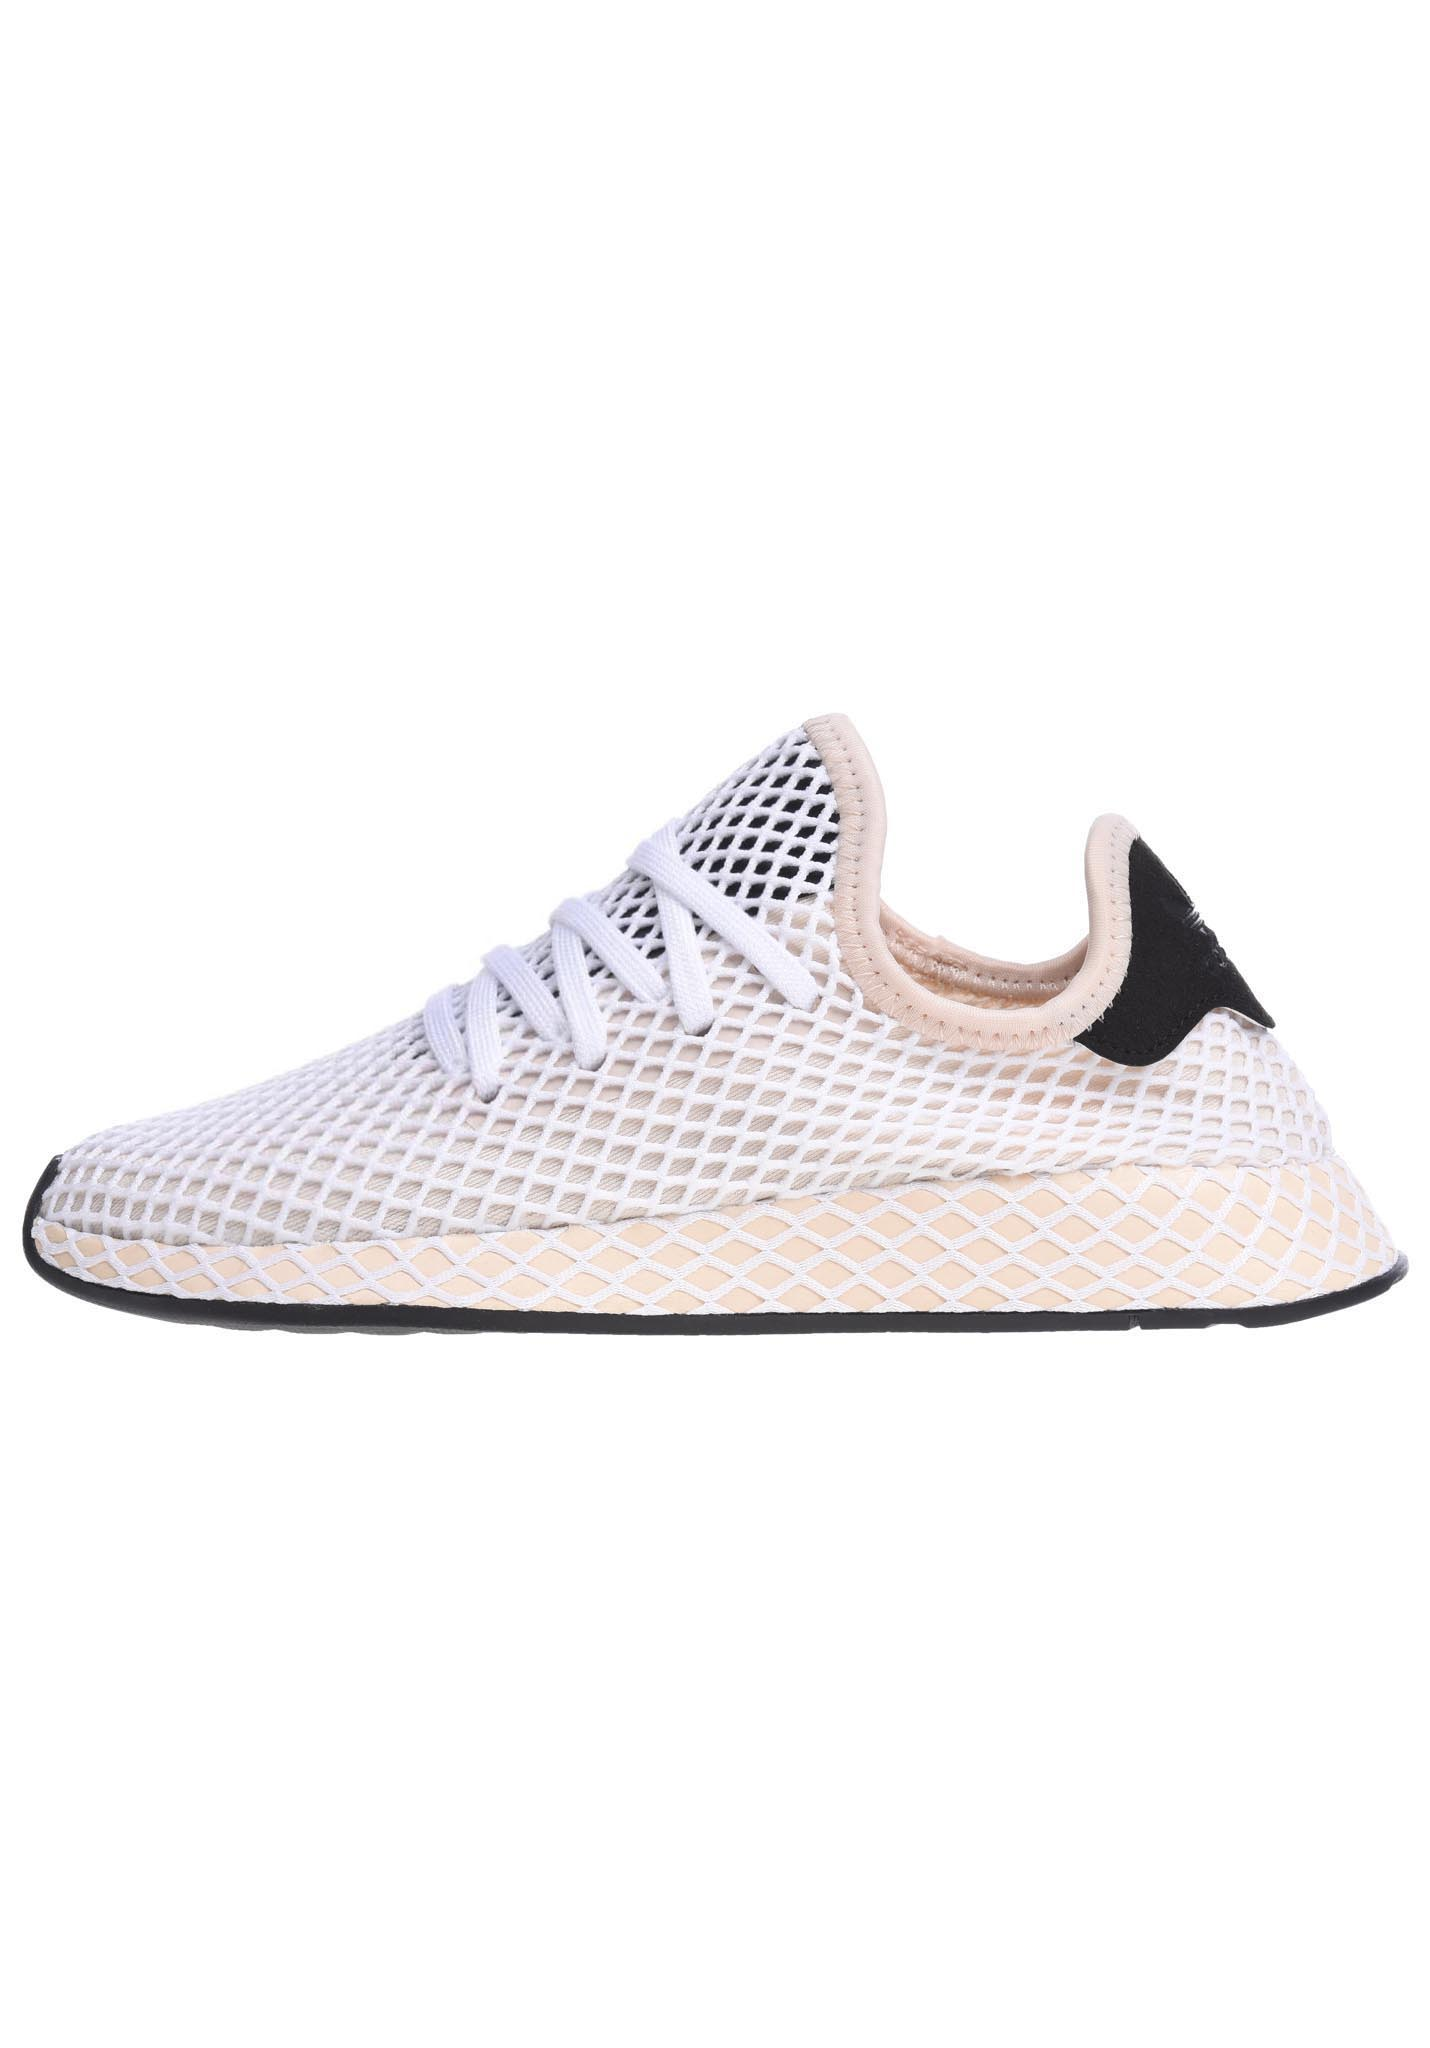 f01f6030381 ADIDAS ORIGINALS Deerupt Runner - Sneakers for Women - White - Planet Sports